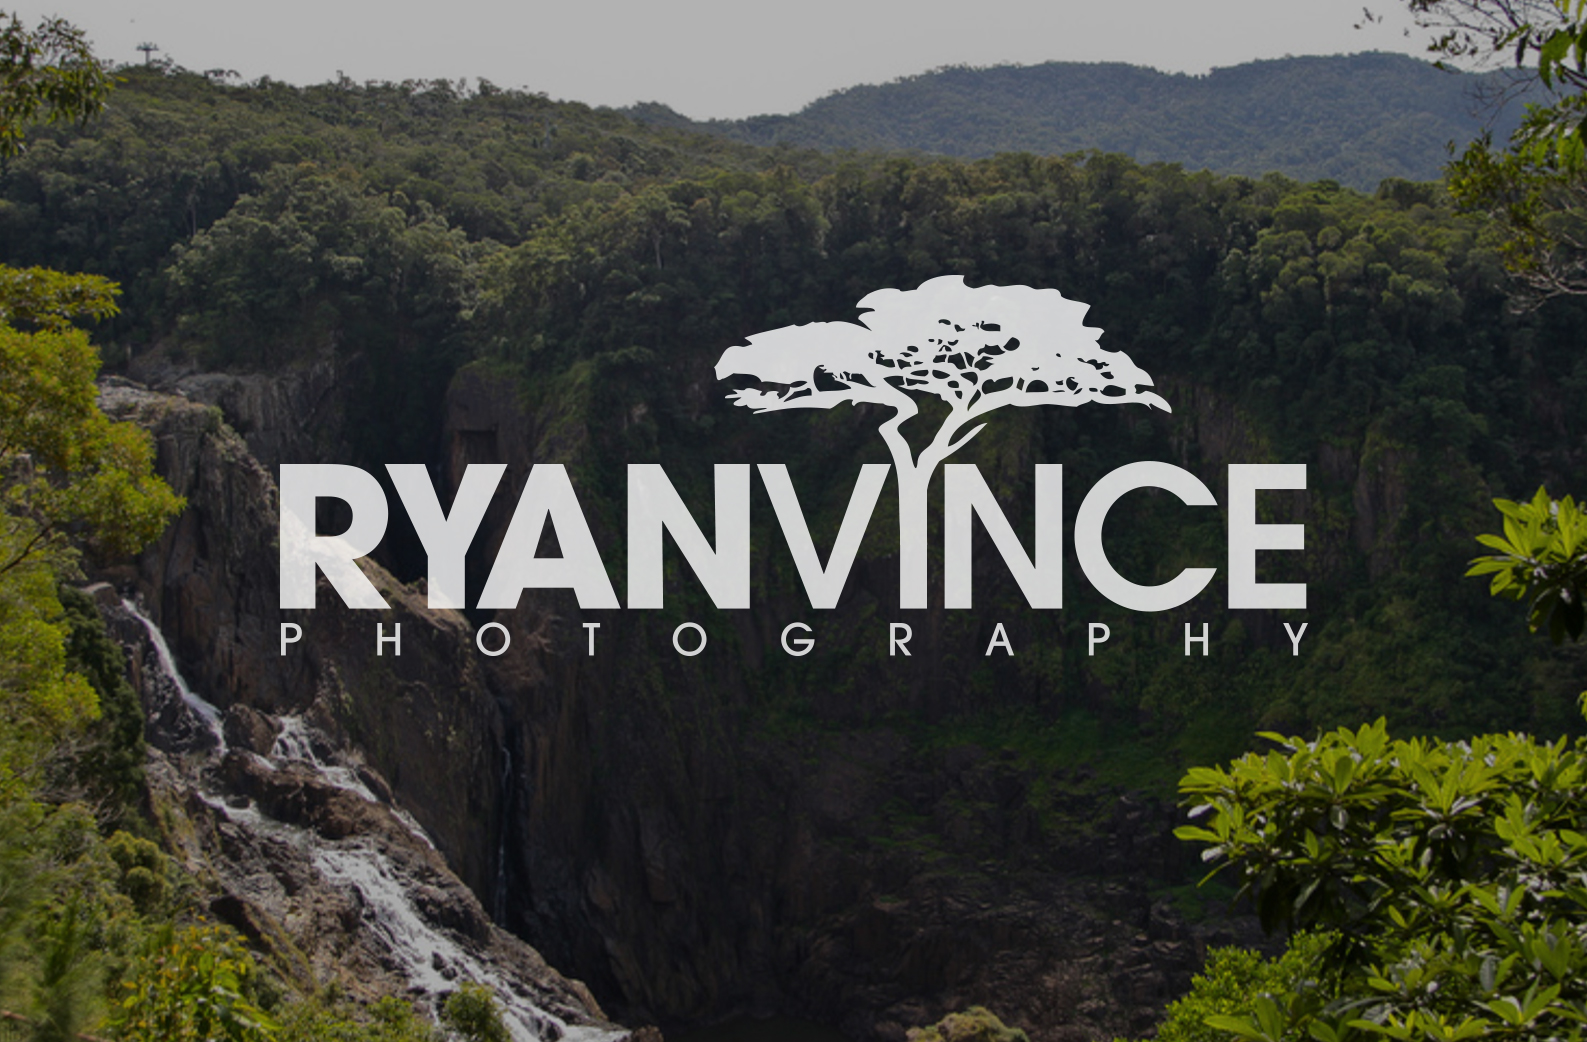 Ryan_Vince_Photography.jpg